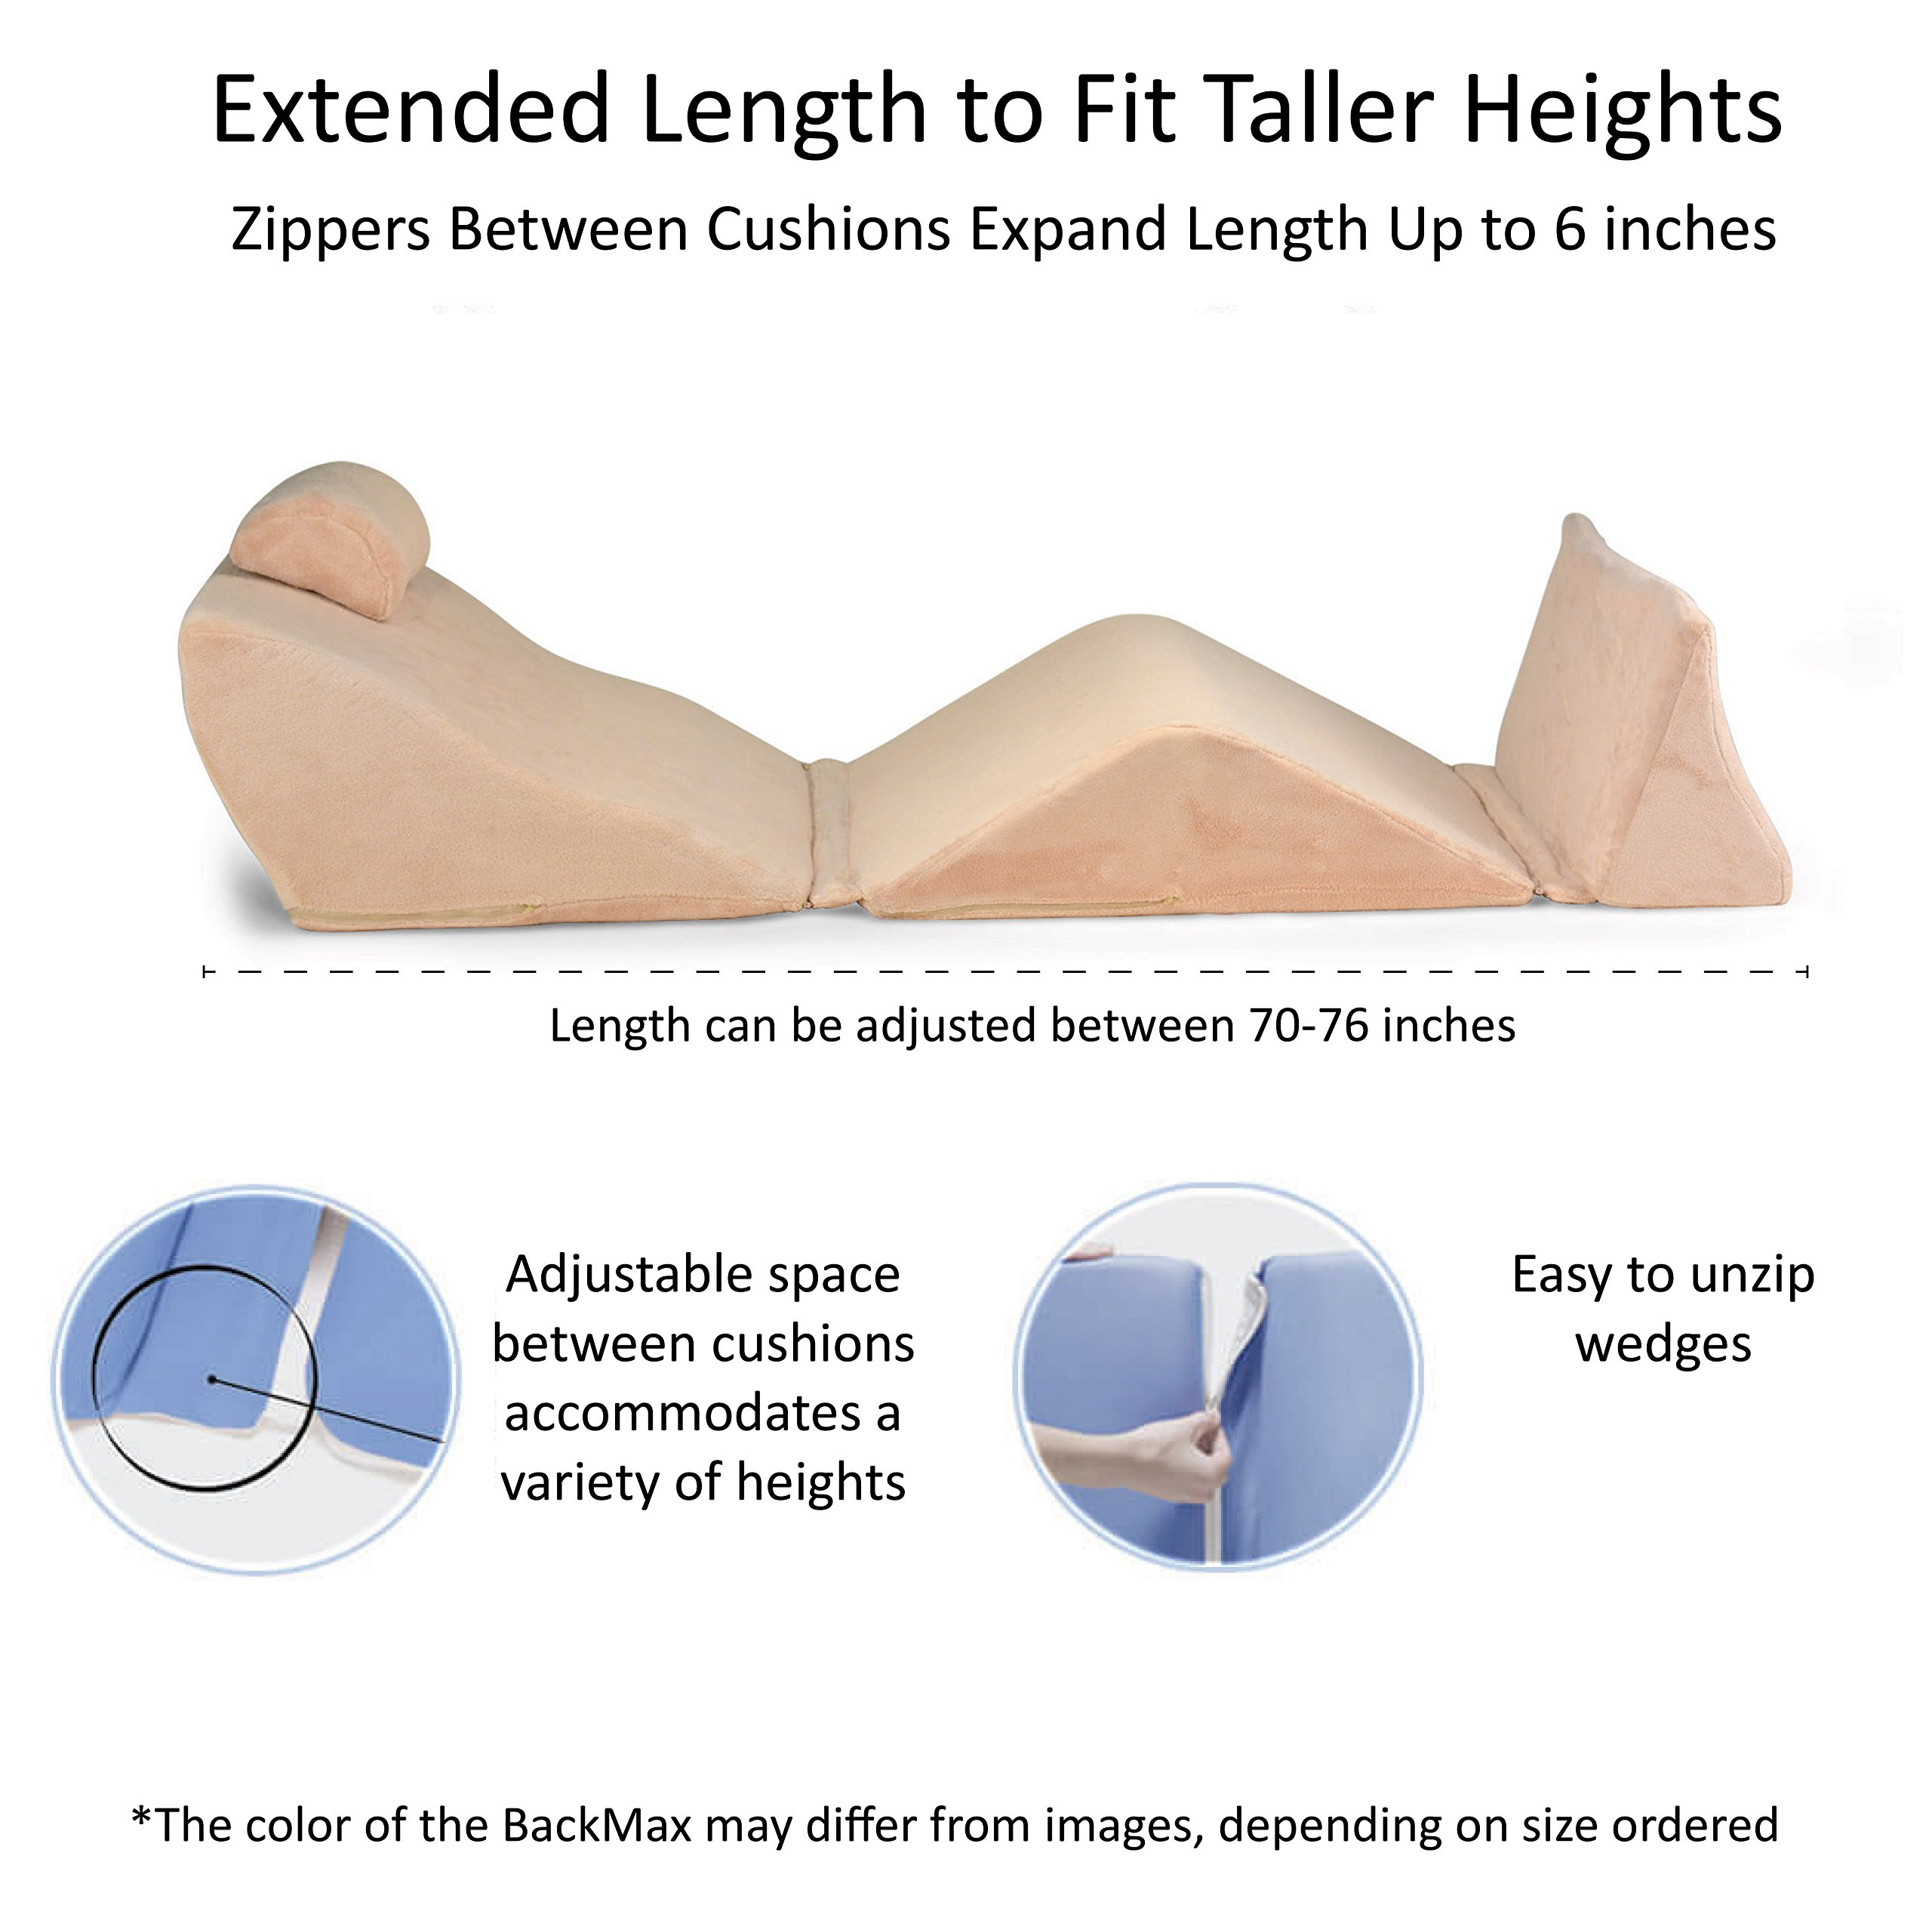 Contour Products BackMax Full Body Foam Bed Wedge Pillow System, Plus 2.0 by Contour (Image #7)